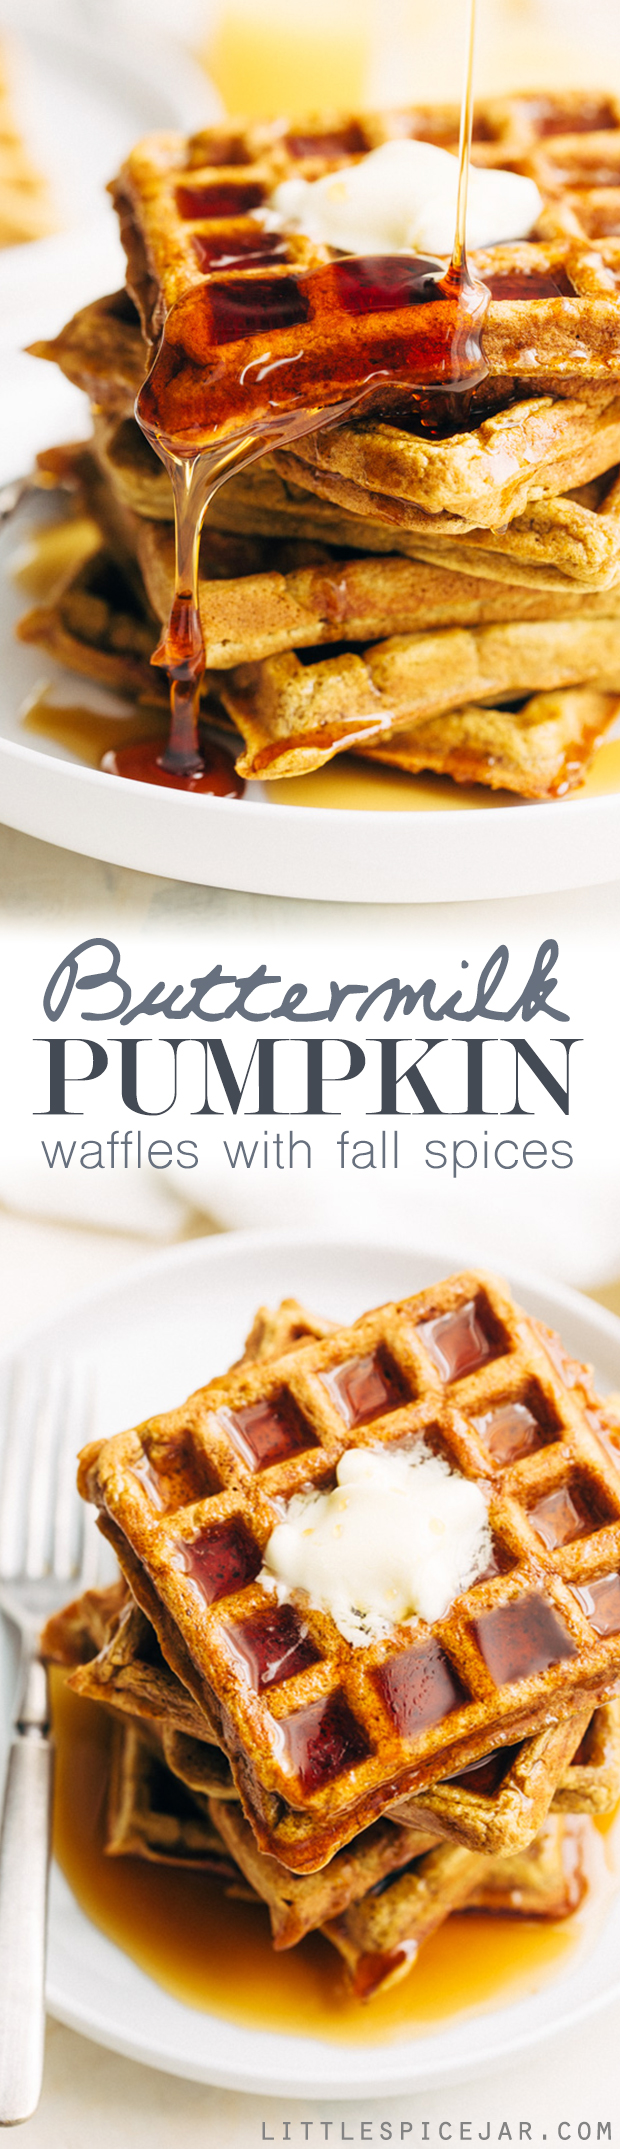 Buttermilk Pumpkin Waffles - The more tender and fluffy waffles that are spiced with fall flavors! Drizzled with maple syrup, they're perfect for fall breakfast! #waffles #pumpkinwaffles #buttermilkwaffles | Littlespicejar.com